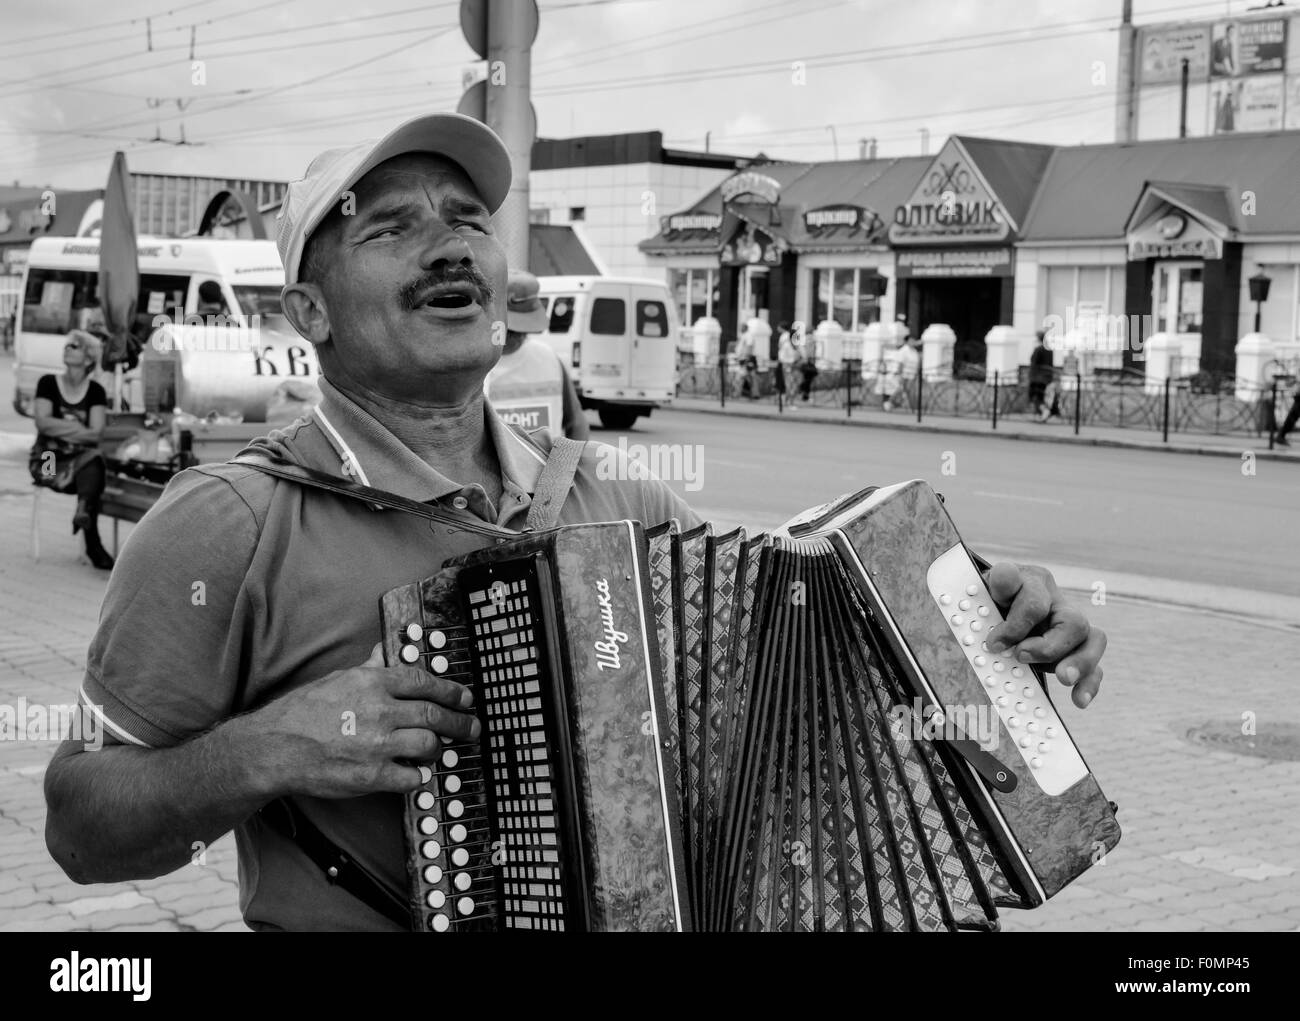 Faced with his disability this blind accordian player plays music for shoppers in Sterlitamak Russia in the hope - Stock Image